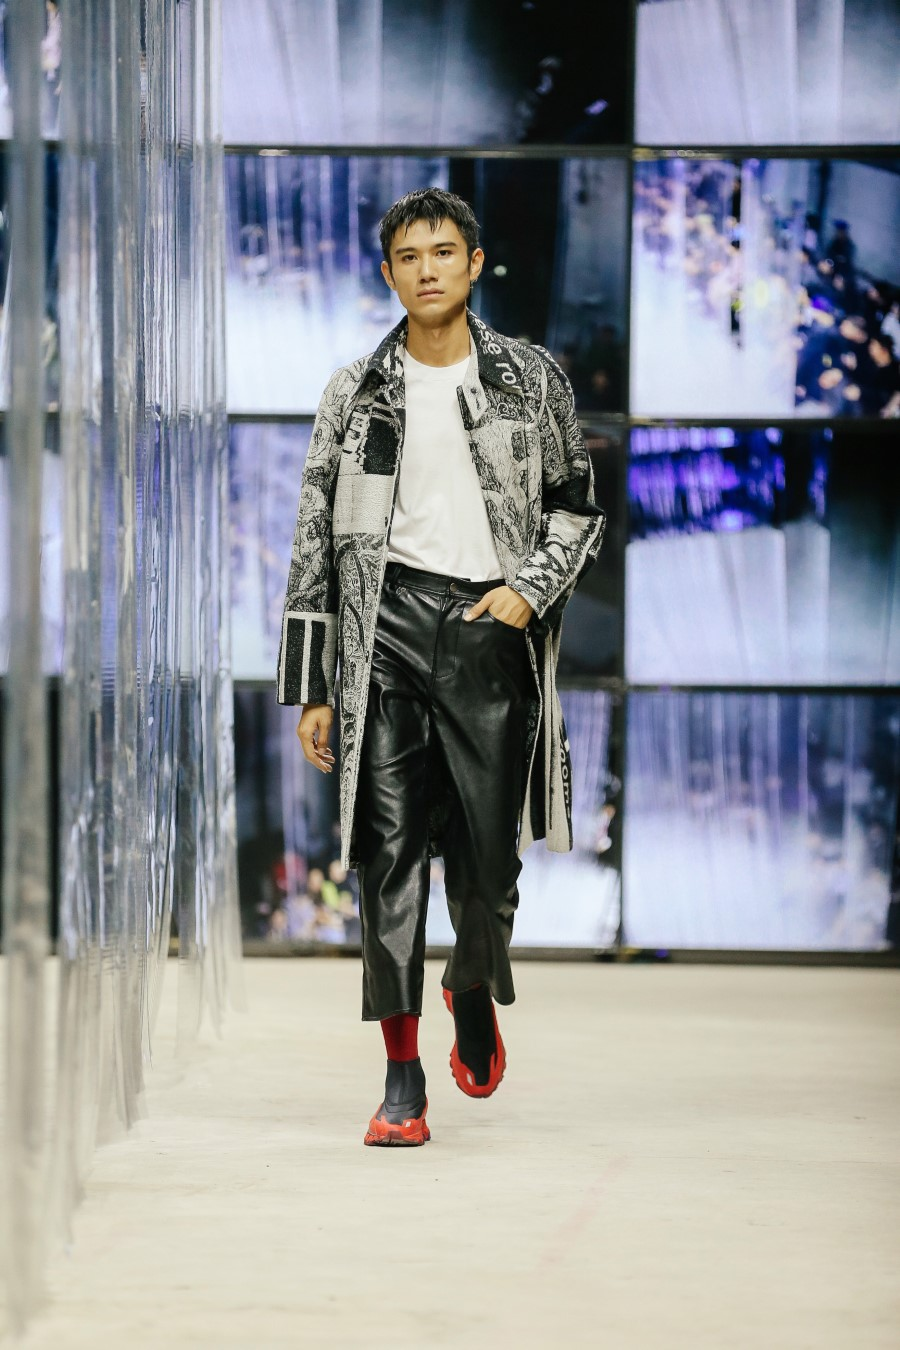 XIMONLEE - Printemps-Été 2020 - Shanghai Fashion Week